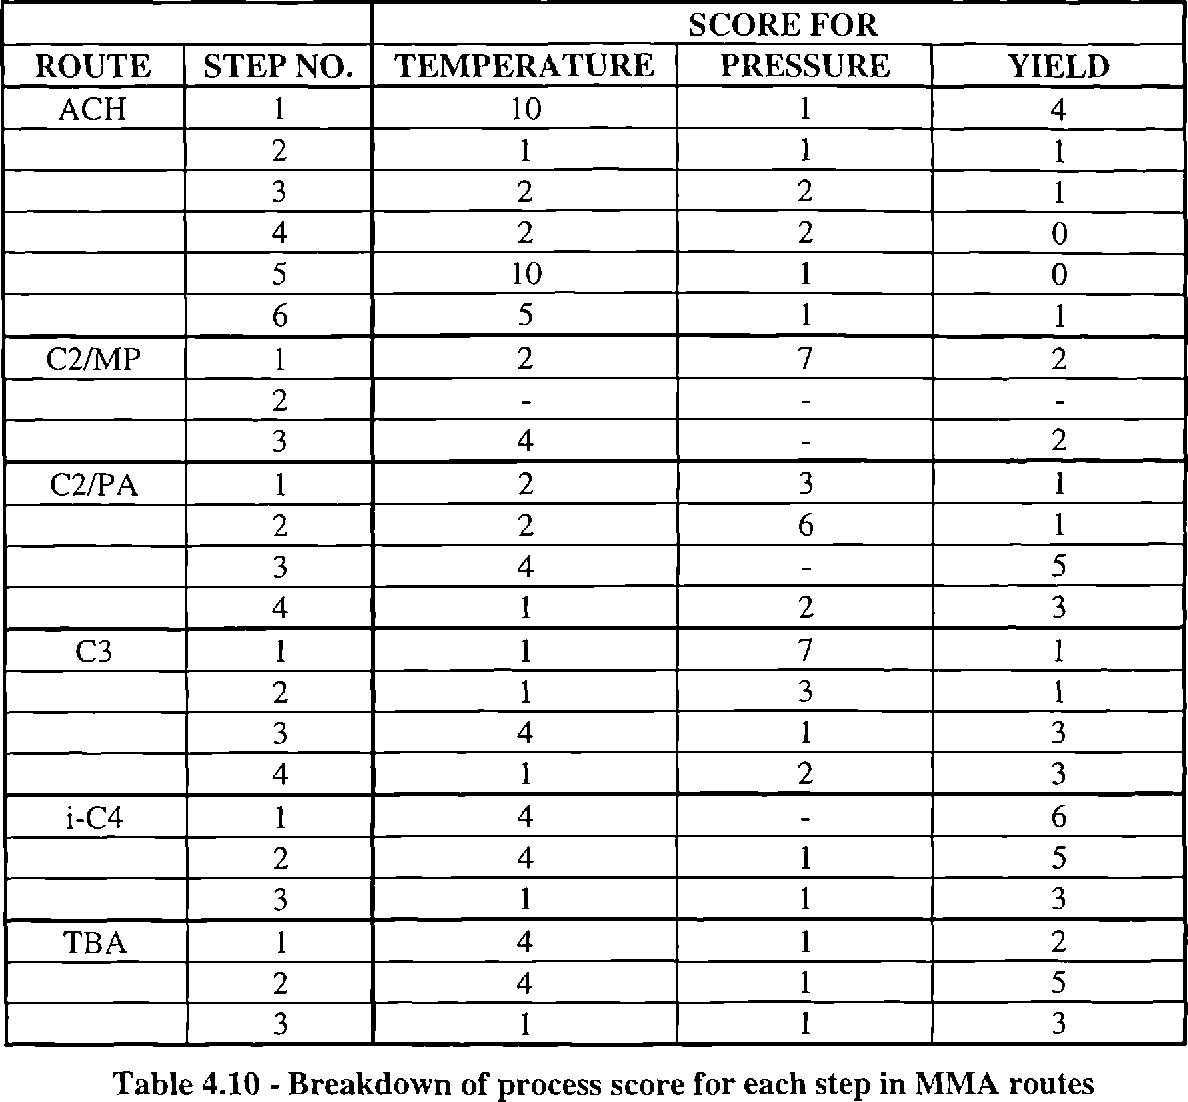 Table 4.10 - Breakdown of process score for each step in MMA routes